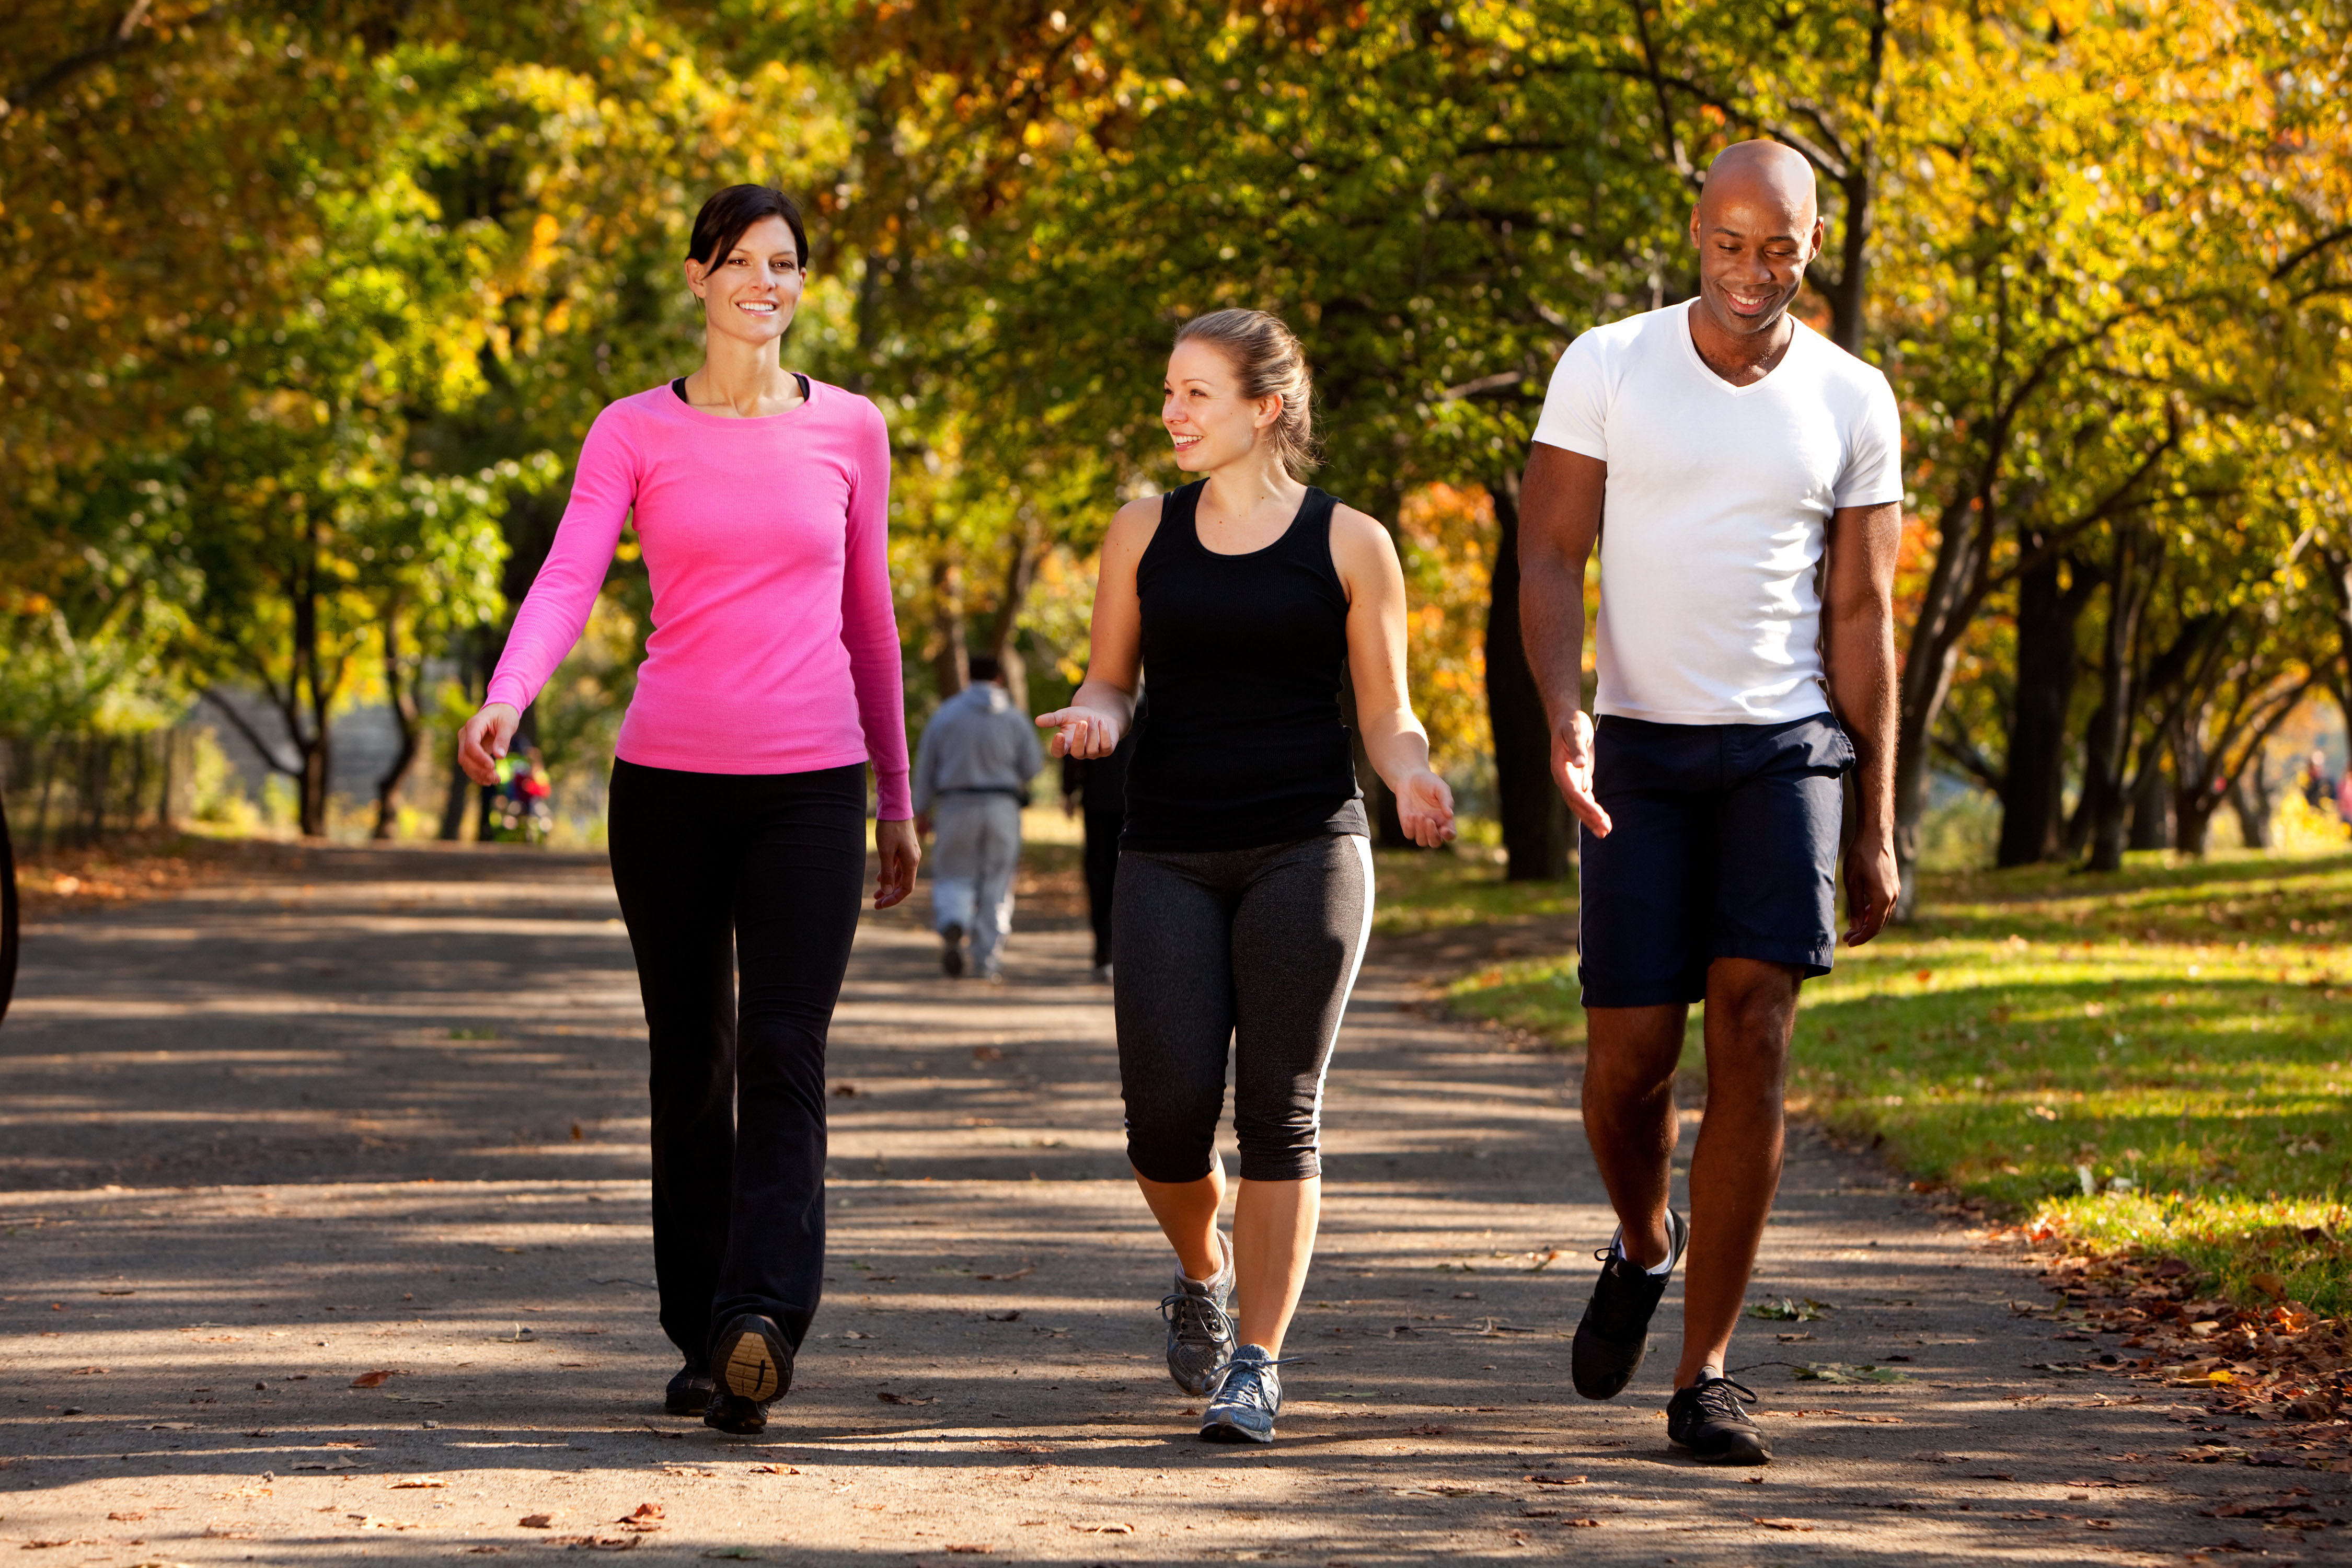 Beginner's Walking Plan